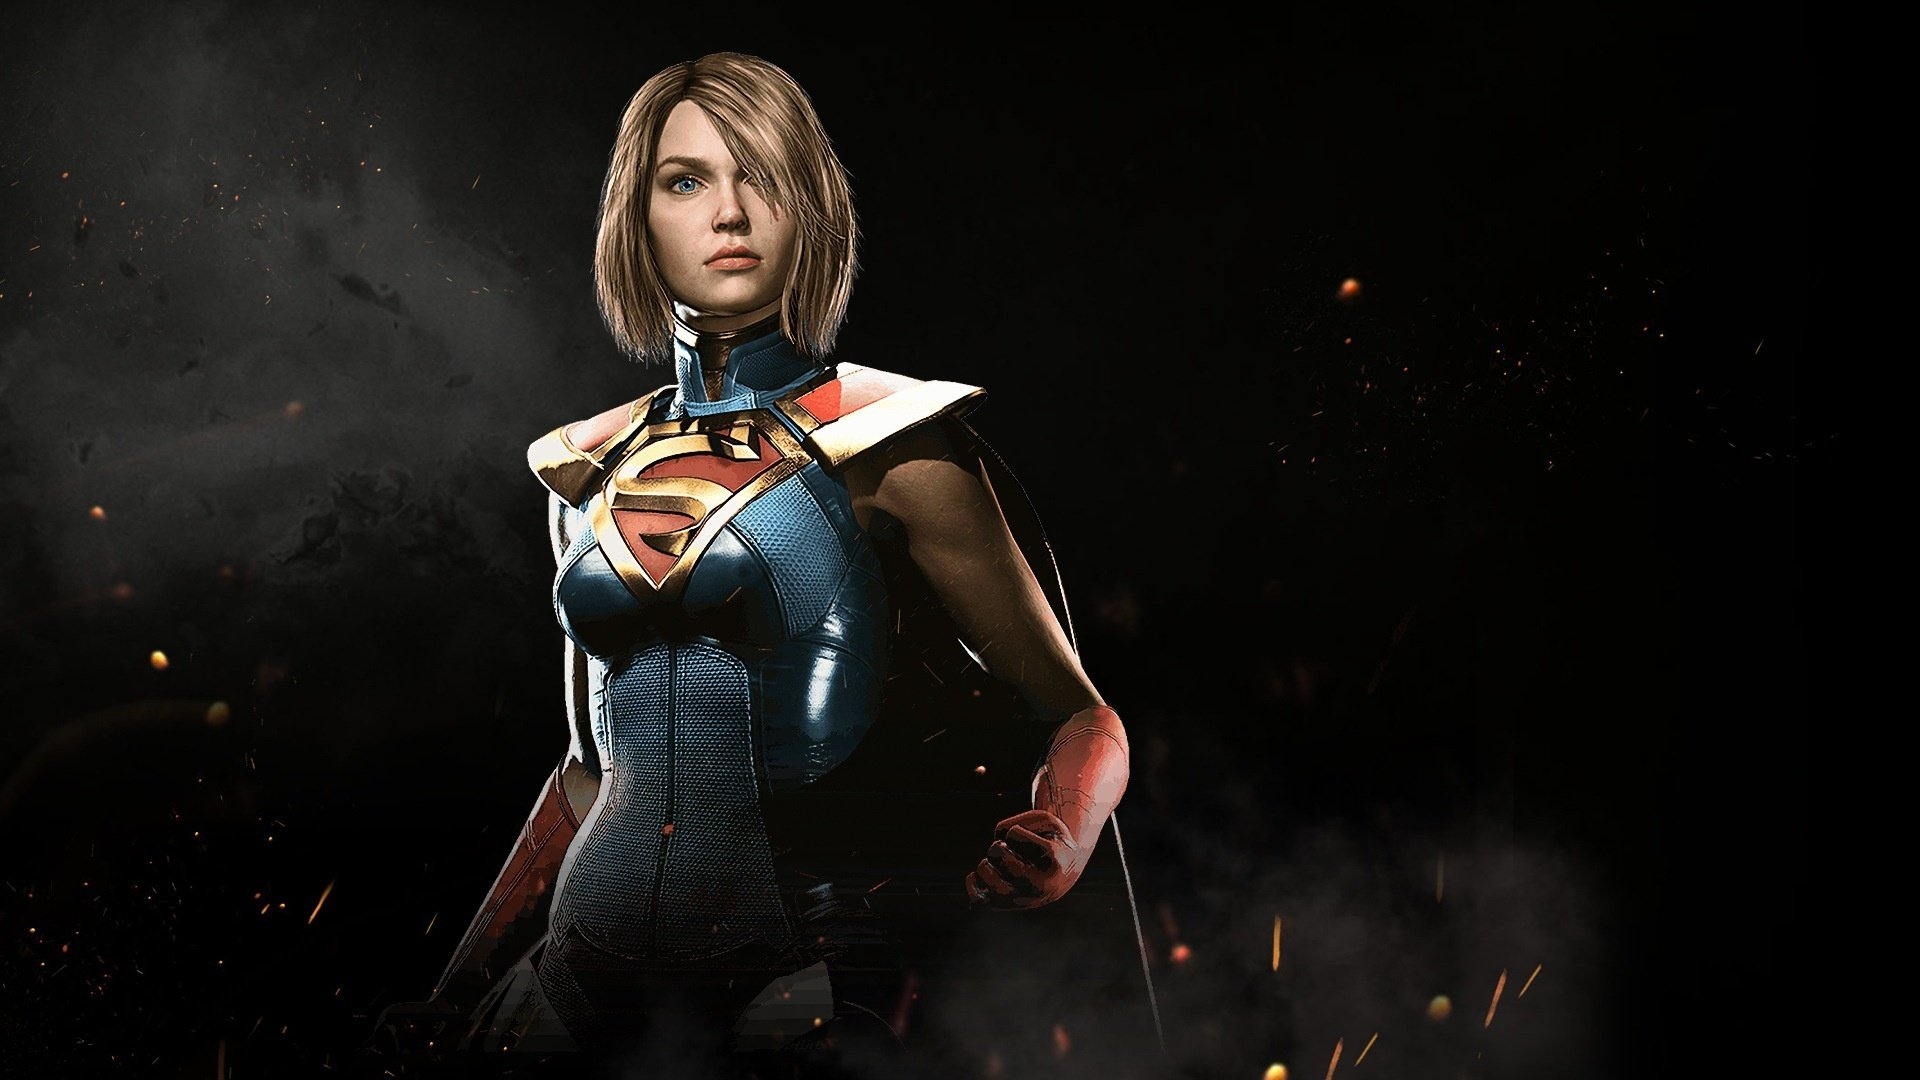 70 Injustice 2 HD Wallpapers